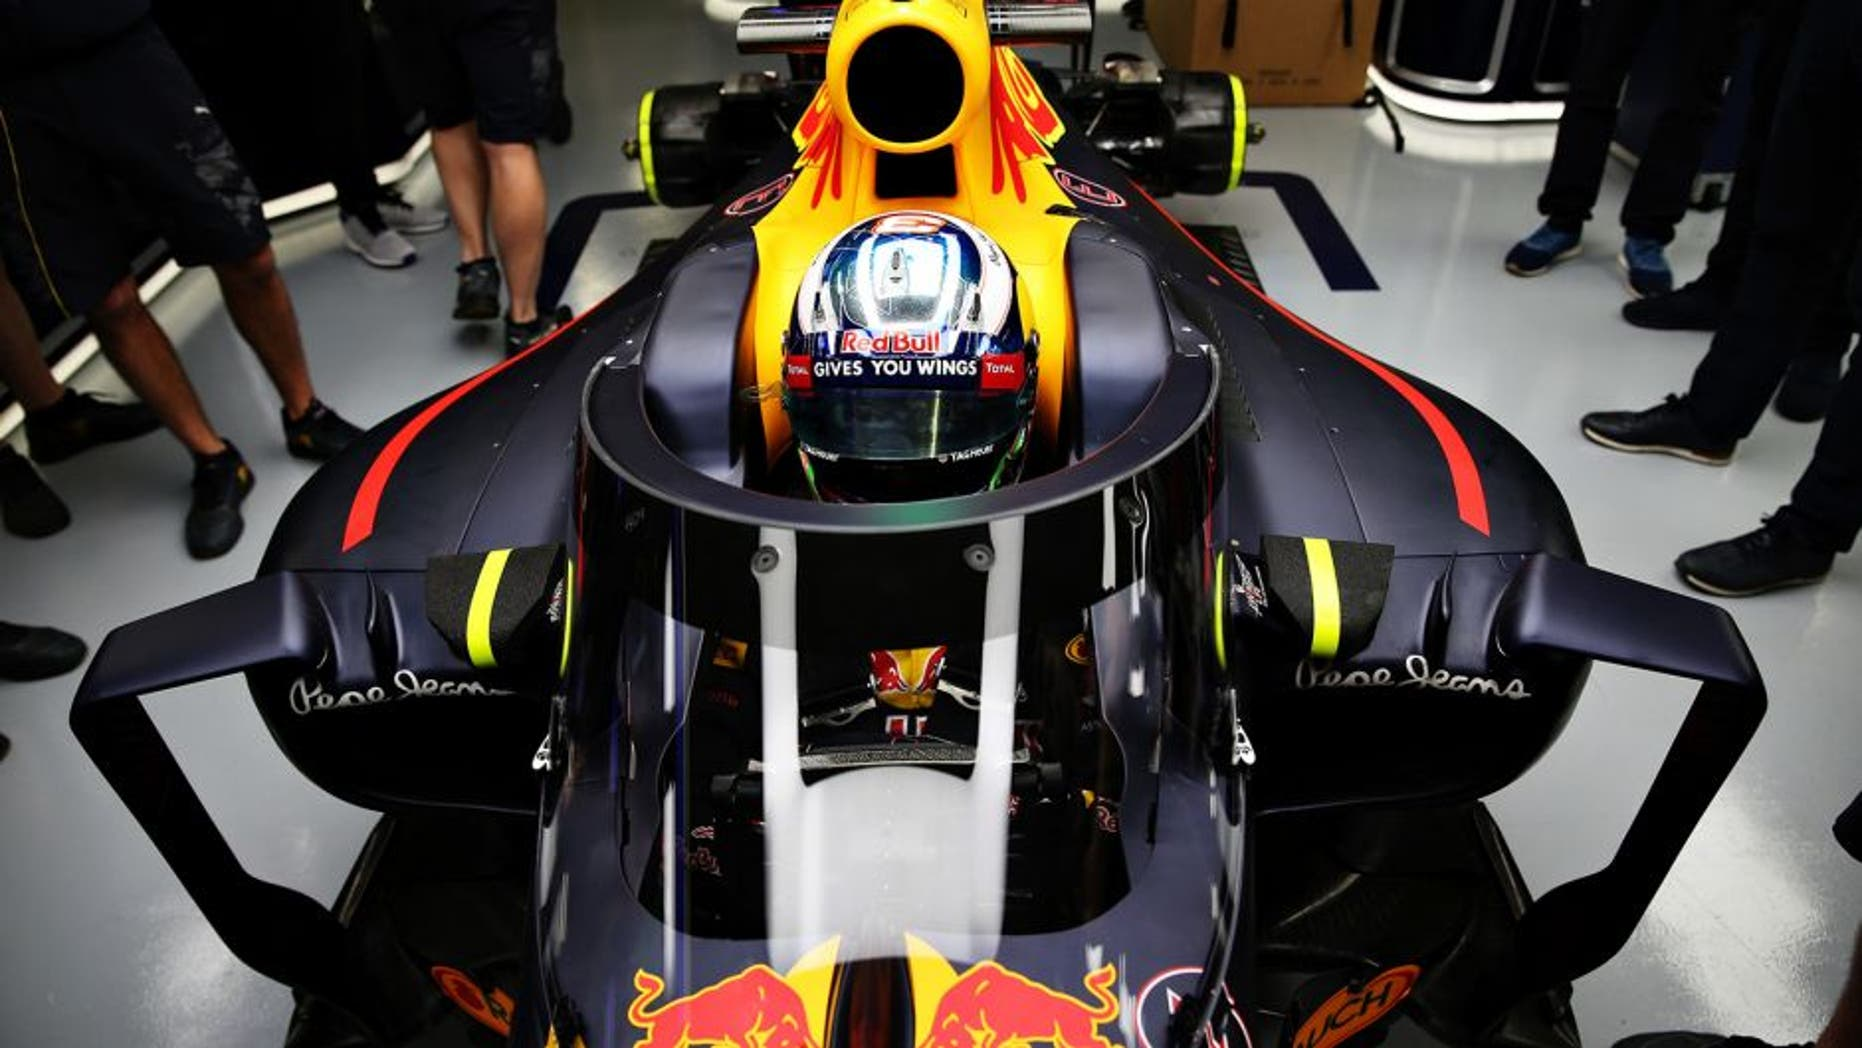 Sochi Autodrom, Sochi, Russia. Thursday 28 April 2016. The prototype Red Bull Racing aeroscreen mounted on the Red Bull Racing Red Bull-TAG Heuer RB12 TAG Heuer in the garage on Thursday ahead of the Formula One Grand Prix of Russia at Sochi Autodrom on April 28, 2016 in Sochi, Russia. Daniel Ricciardo, Red Bull Racing, is behind the wheel. Ref: 605547879_MT_4008_B80D4DEBB6F1907D086A2CD3D8748689 World Copyright - Red Bull/LAT Photographic